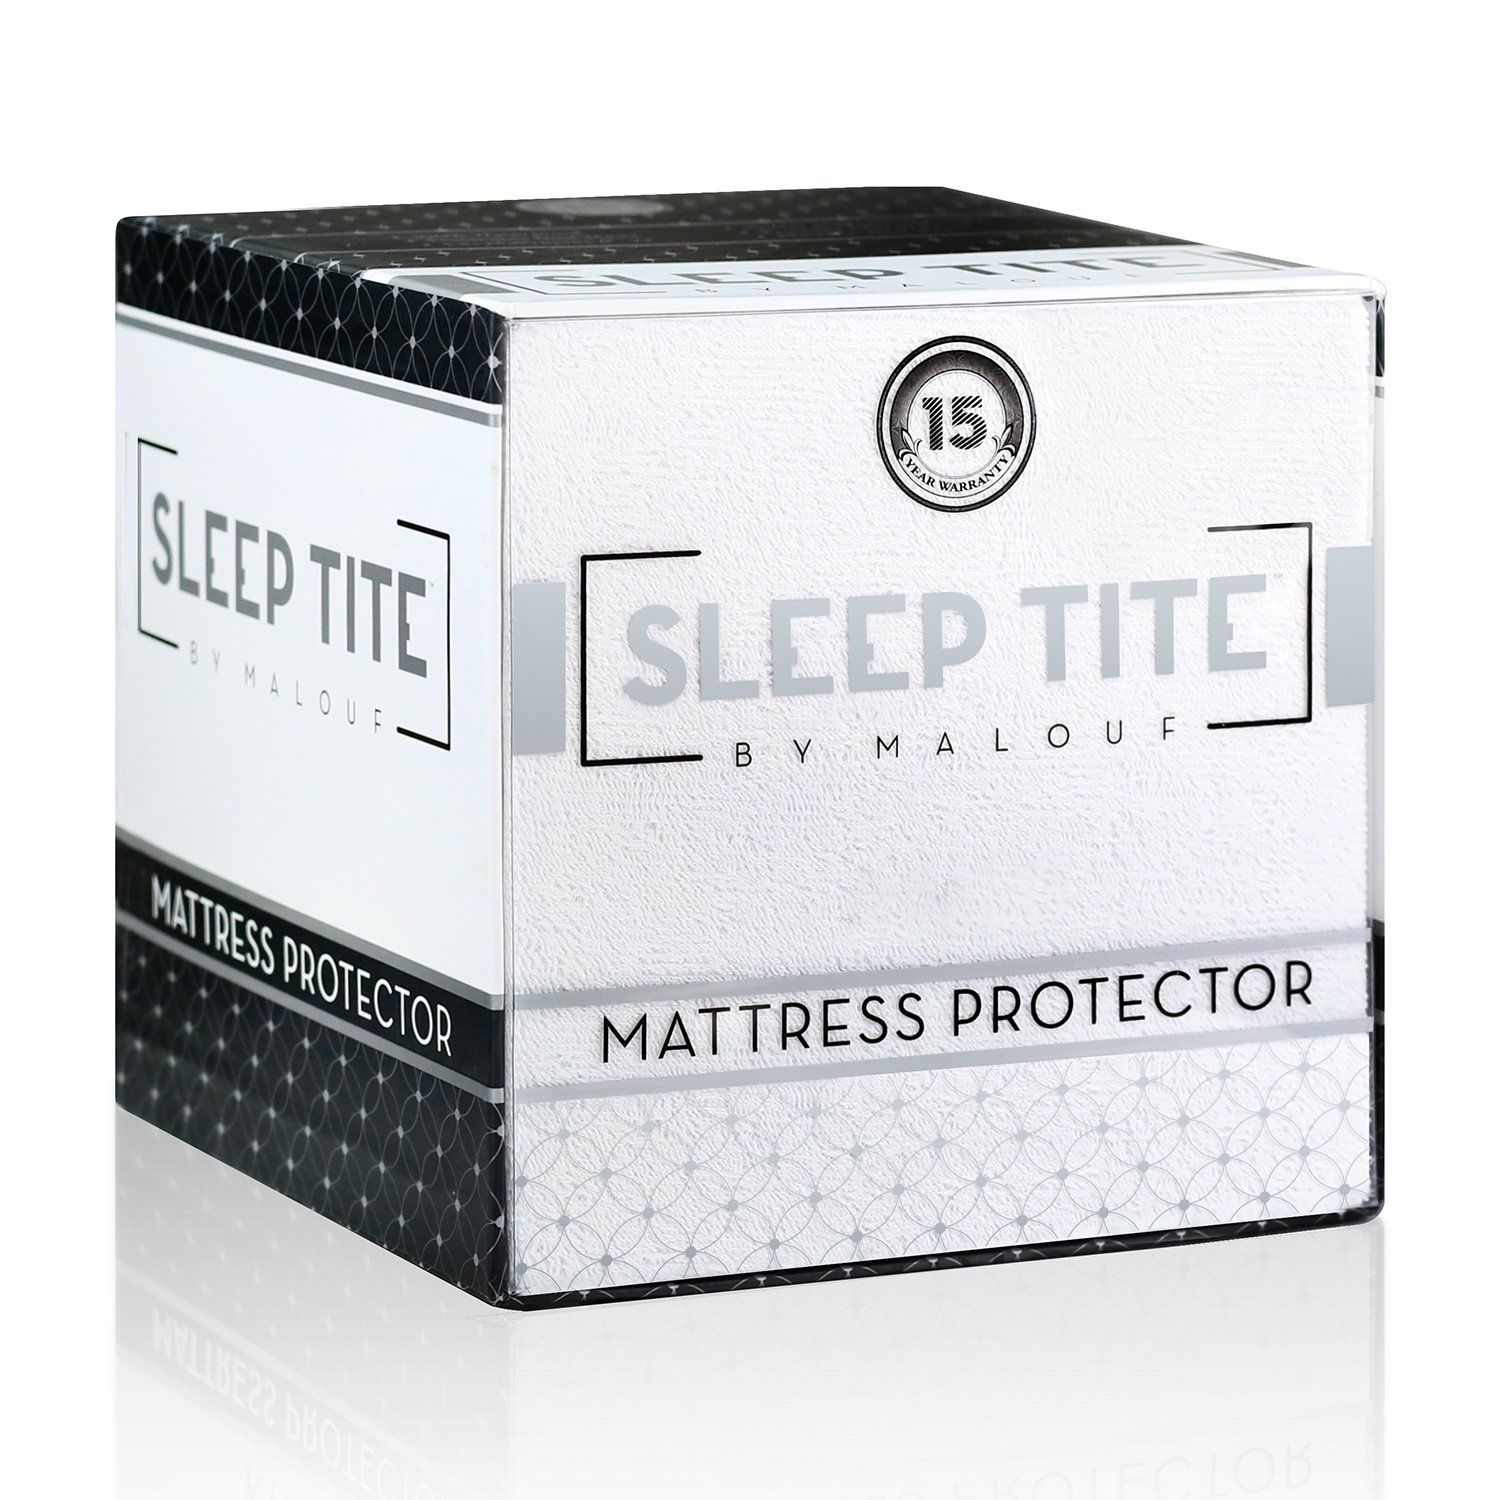 Malouf Sleep Tite Mattress Protector Amazon Sleep Tite By Malouf Hypoallergenic 100 Waterproof